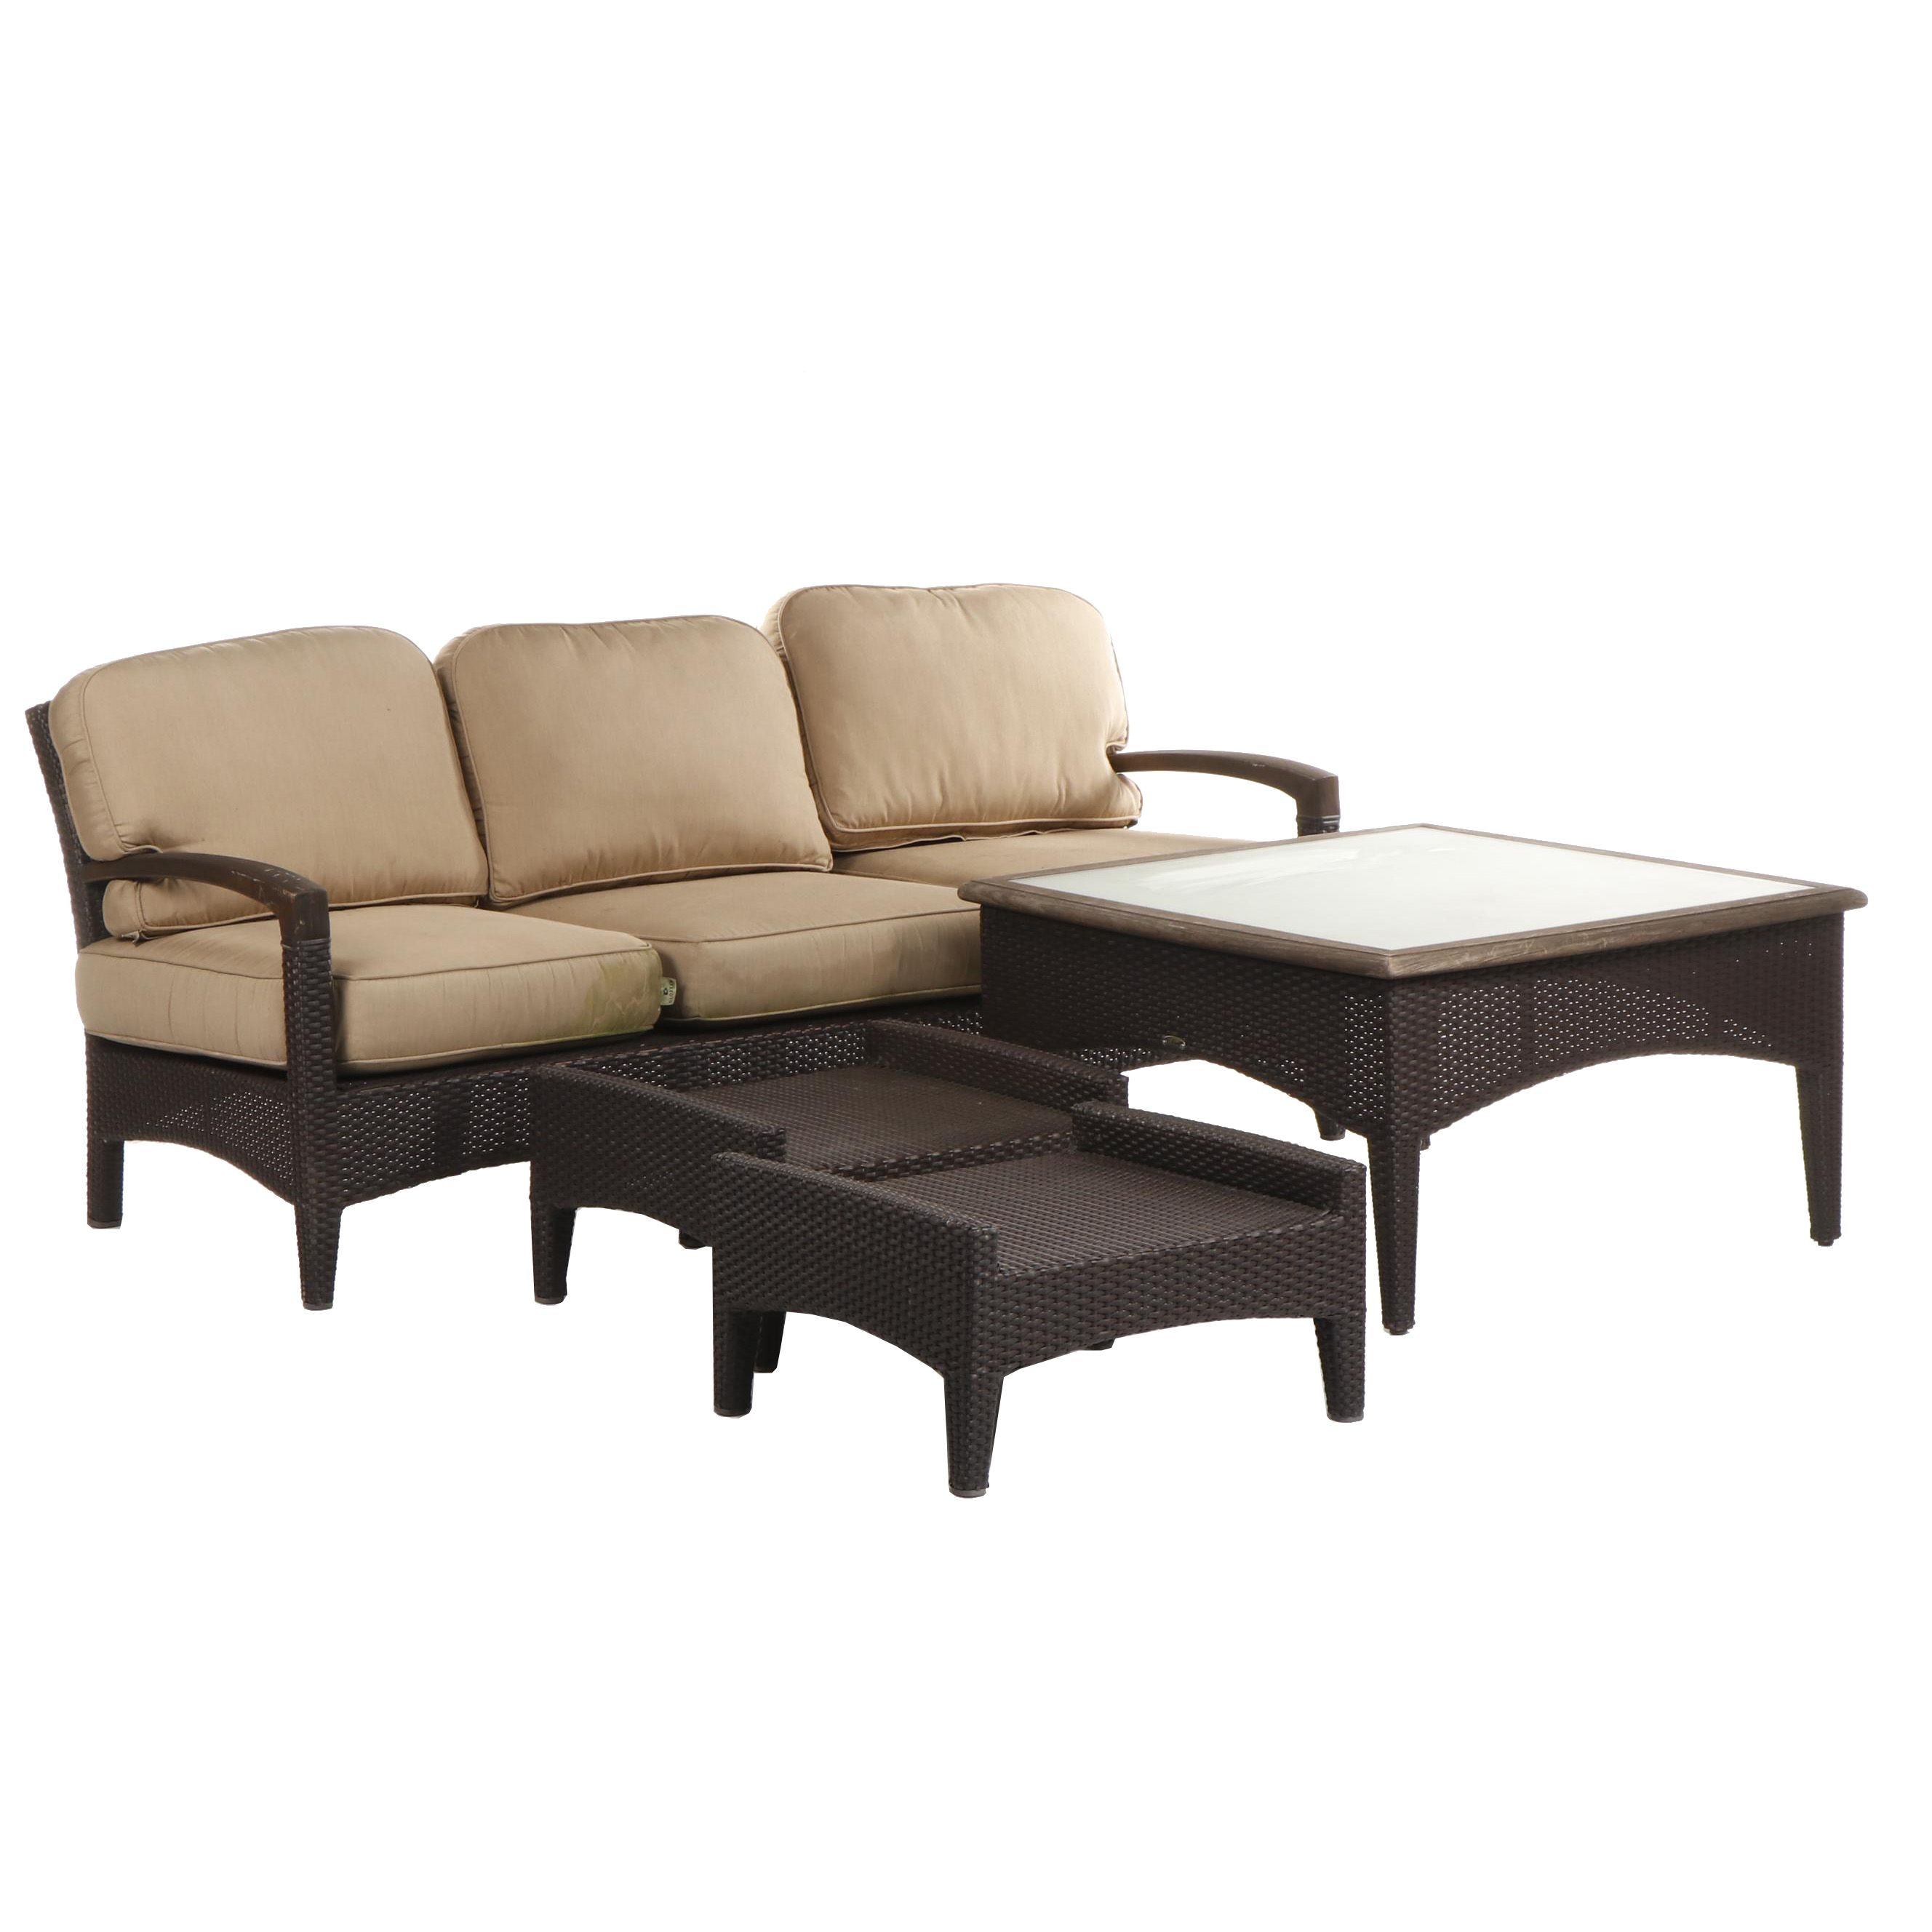 Patio Set Featuring Gloster Sofa and Coffee Table